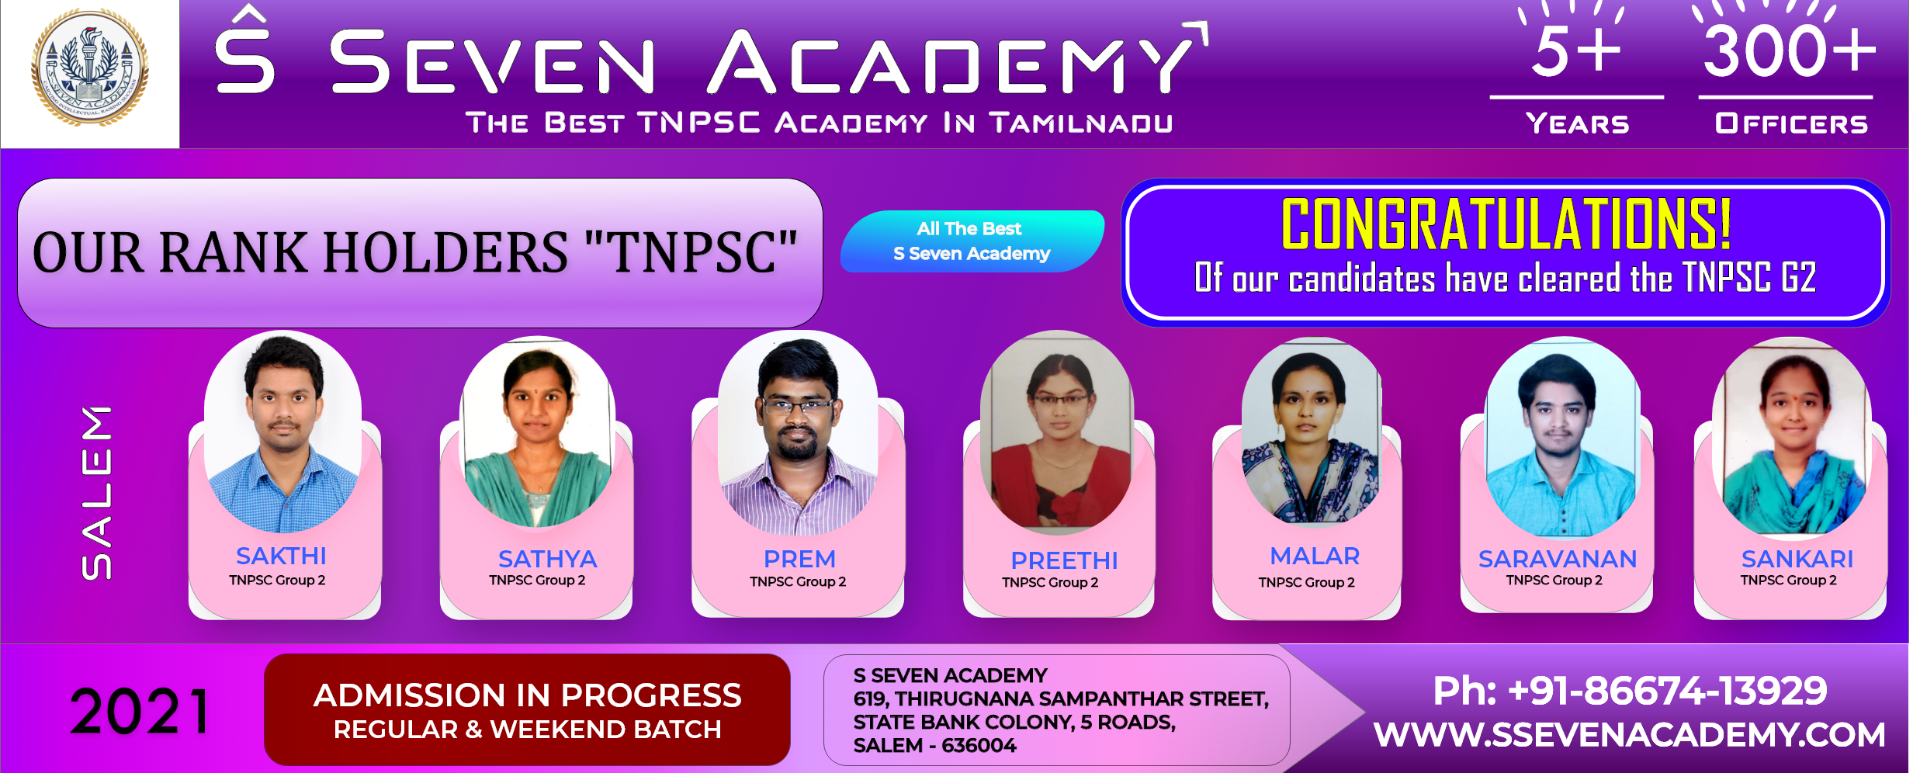 TNPSC Group 2 Mock Test 2 in Tamil, TNPSC Group 2 Mock Test 2 in English, Tnpsc Free Online Test, TNPSC GROUP 2 ONLINE TEST, Tnpsc Online Test for Tnpsc group 2, 4, VAO and all competitive exams, TNPSC Free Online Mock Test in Tamil, Online test, tnpsc coaching center in salem, tnpsc salem, tnpsc coaching in salem, tnpsc, tnpsc coaching class in salem, tnpsc coaching centre in salem, tnpsc coaching centre, tnpsc coaching centre in salem, TNPSC Coaching Institute - SALEM, free coaching centre for tnpsc in salem, TNPSC Coaching Institutes in Salem, TNPSC coaching centre, TNPSC Coaching Centres in Salem, TNPSC Exams, Coaching Classes Providers in Salem, Coaching Institute, TNPSC Coaching Centres in Salem, Coaching classes in Salem, TNPSC Coaching in Salem TNPSC Coaching Institute - SALEM, TNPSC Entrance Coaching Centre in Salem, Salem coaching centre, Salem coaching centre Number 1 coaching centre for TNPSC, TET, TRB, RRB, TNEB, POLICE, SI, Agri,  TNPSC Academy, TNPSC Coaching Centres, TNPSC Classes, TNPSC Exam Preparation in Salem, Tnpsc coaching centre in salem, TNPSC Coaching Institute in India, TNPSC Exams Coaching Institute in Salem, Best TNPSC Coaching Institutes in Salem, Top 5 TNPSC Coaching Institute in Salem, TNPSC Entrance Coaching Centre in Salem, Best TNPSC Academy, tnpsc group exam coaching in salem, tnpsc group exam training in salem, tnpsc coaching classes in salem, tnpsc training center in salem, tnpsc coaching institute in salem, tnpsc training institute in salem, tnpsc training centre in salem, tnpsc group 2 coaching in salem, tnpsc group 4 coaching classes in salem, tnpsc vao coaching classes in salem, tnspc group 2 coaching classes in salem, vao coaching in salem, vao coaching classes in salem, coaching classes in Salem with hostel and get top TNPSC classes, TNPSC stands for Tamil Nadu Public Service Commission, TNPSC Combined Civil Services Examination (Group - I, II, III, IV), TNPSC VAO, TN Public Service Commission, TNPSC Combined Engineering Se